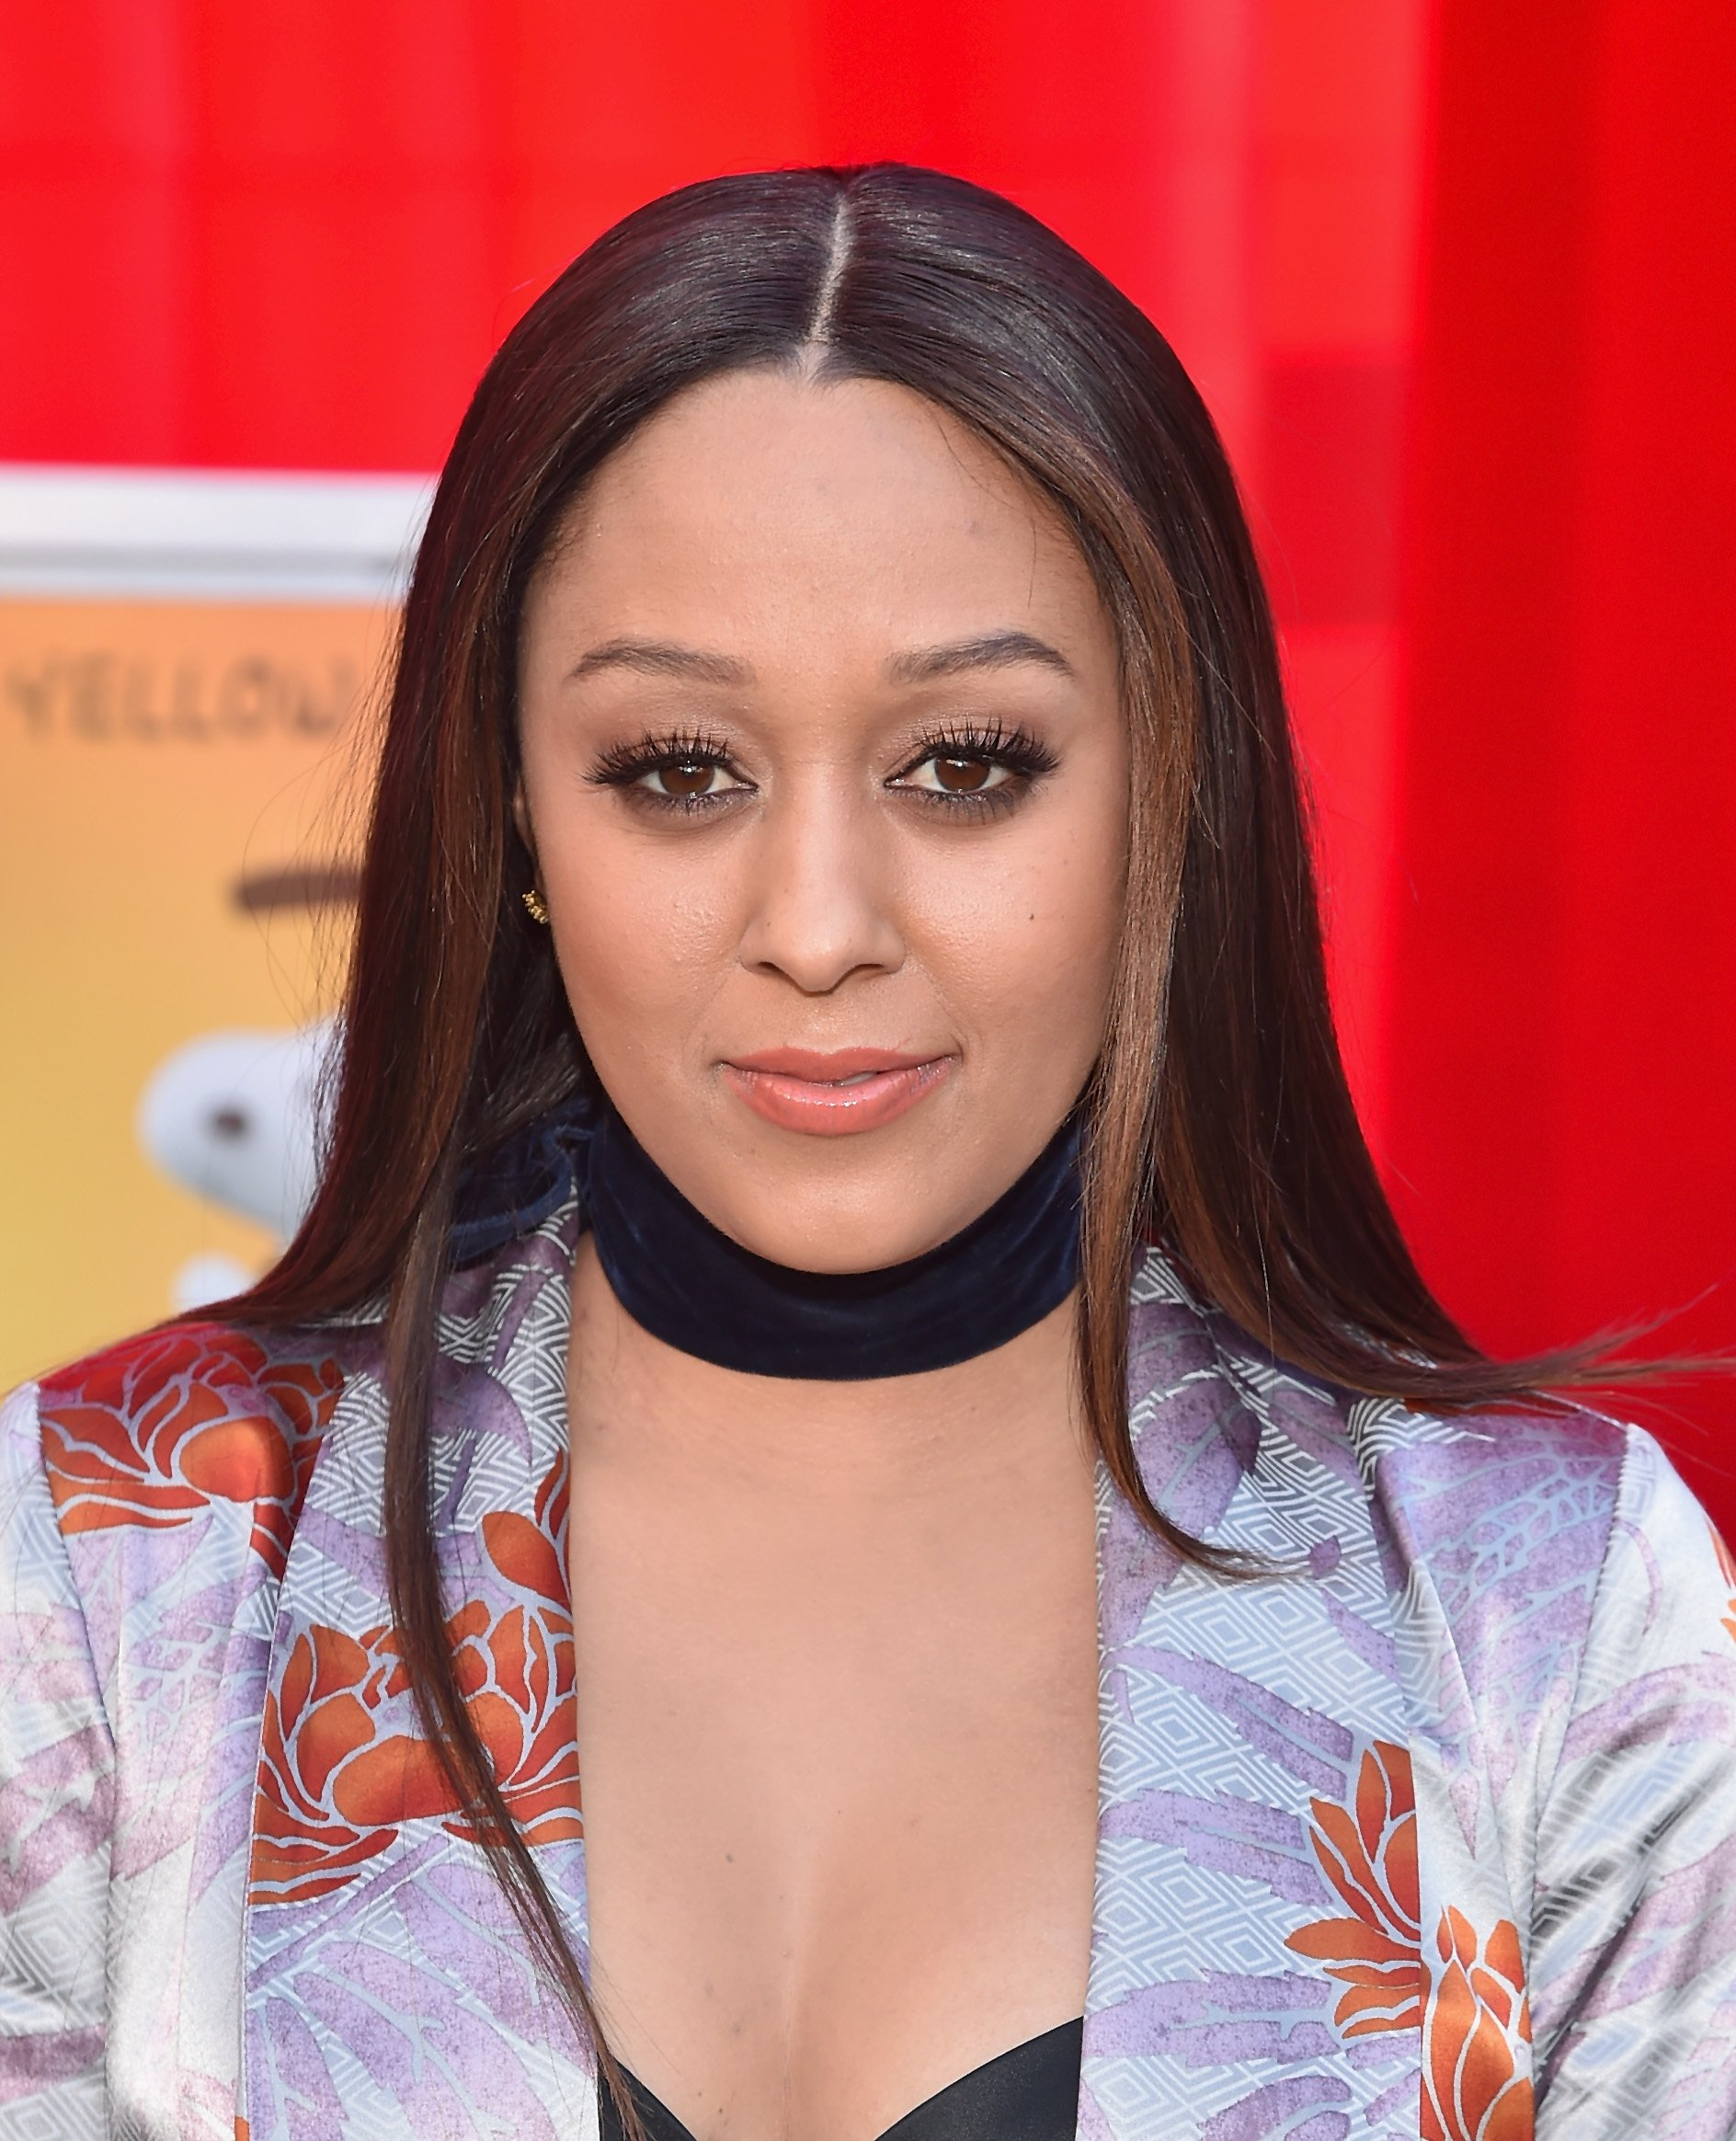 """Tia Mowry attends the """"The Peanuts Movie"""" premiere at The Regency Village Theatre on November 1, 2015 in Westwood, California. 